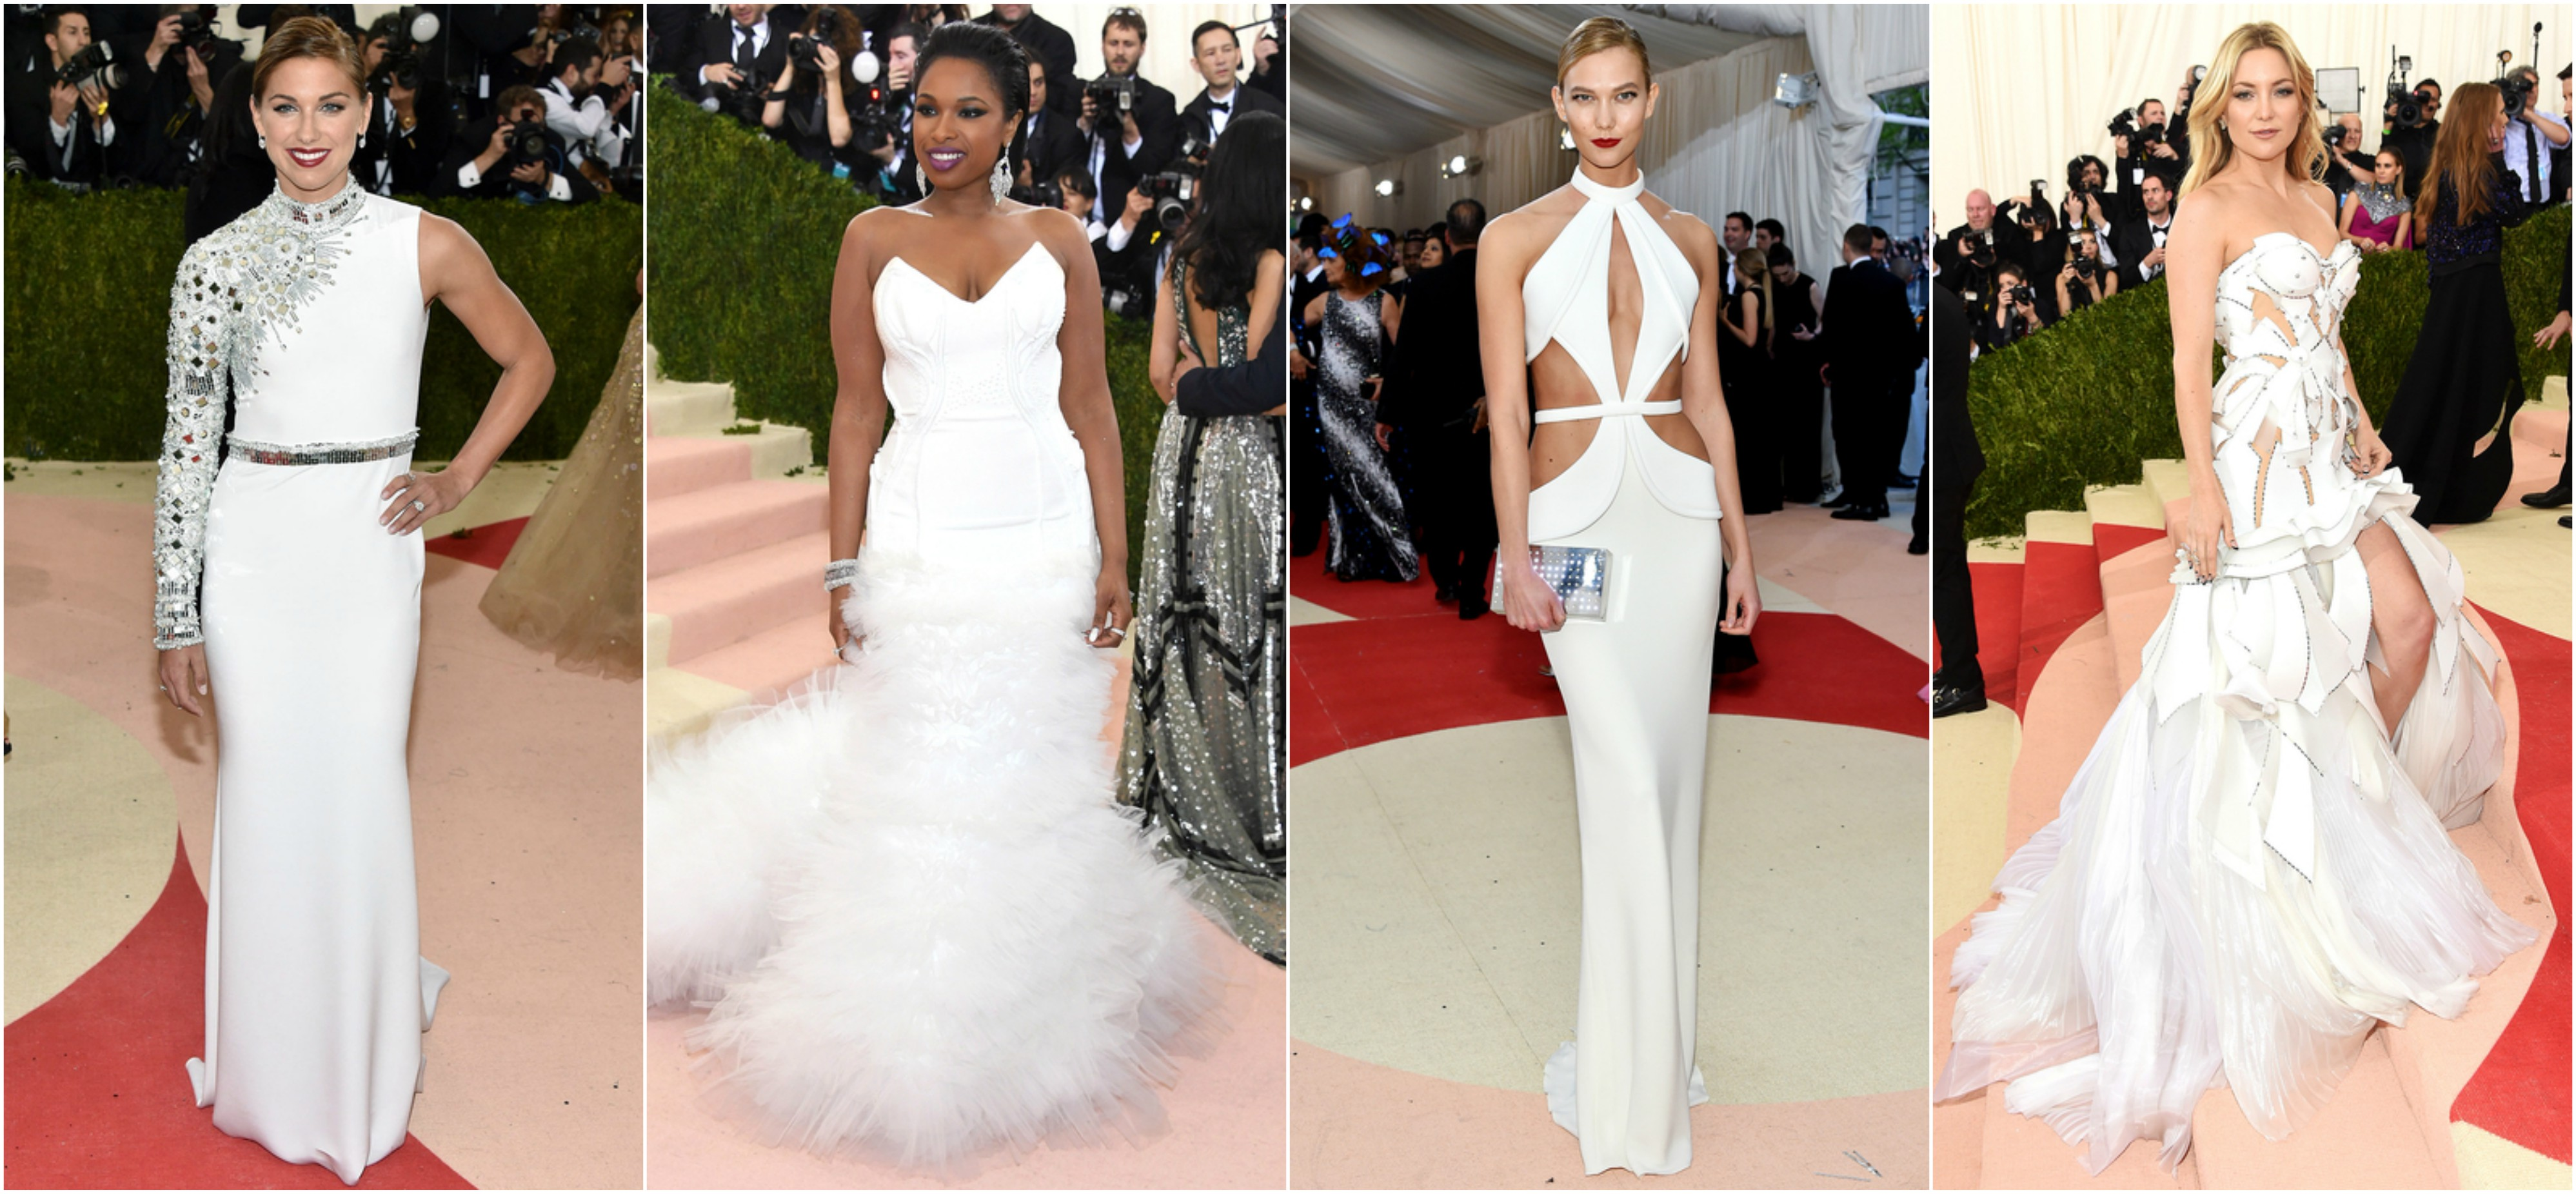 Wedding Fashion Inspiration From The Red Carpet The: Red Carpet Inspiration: The 2016 Met Gala